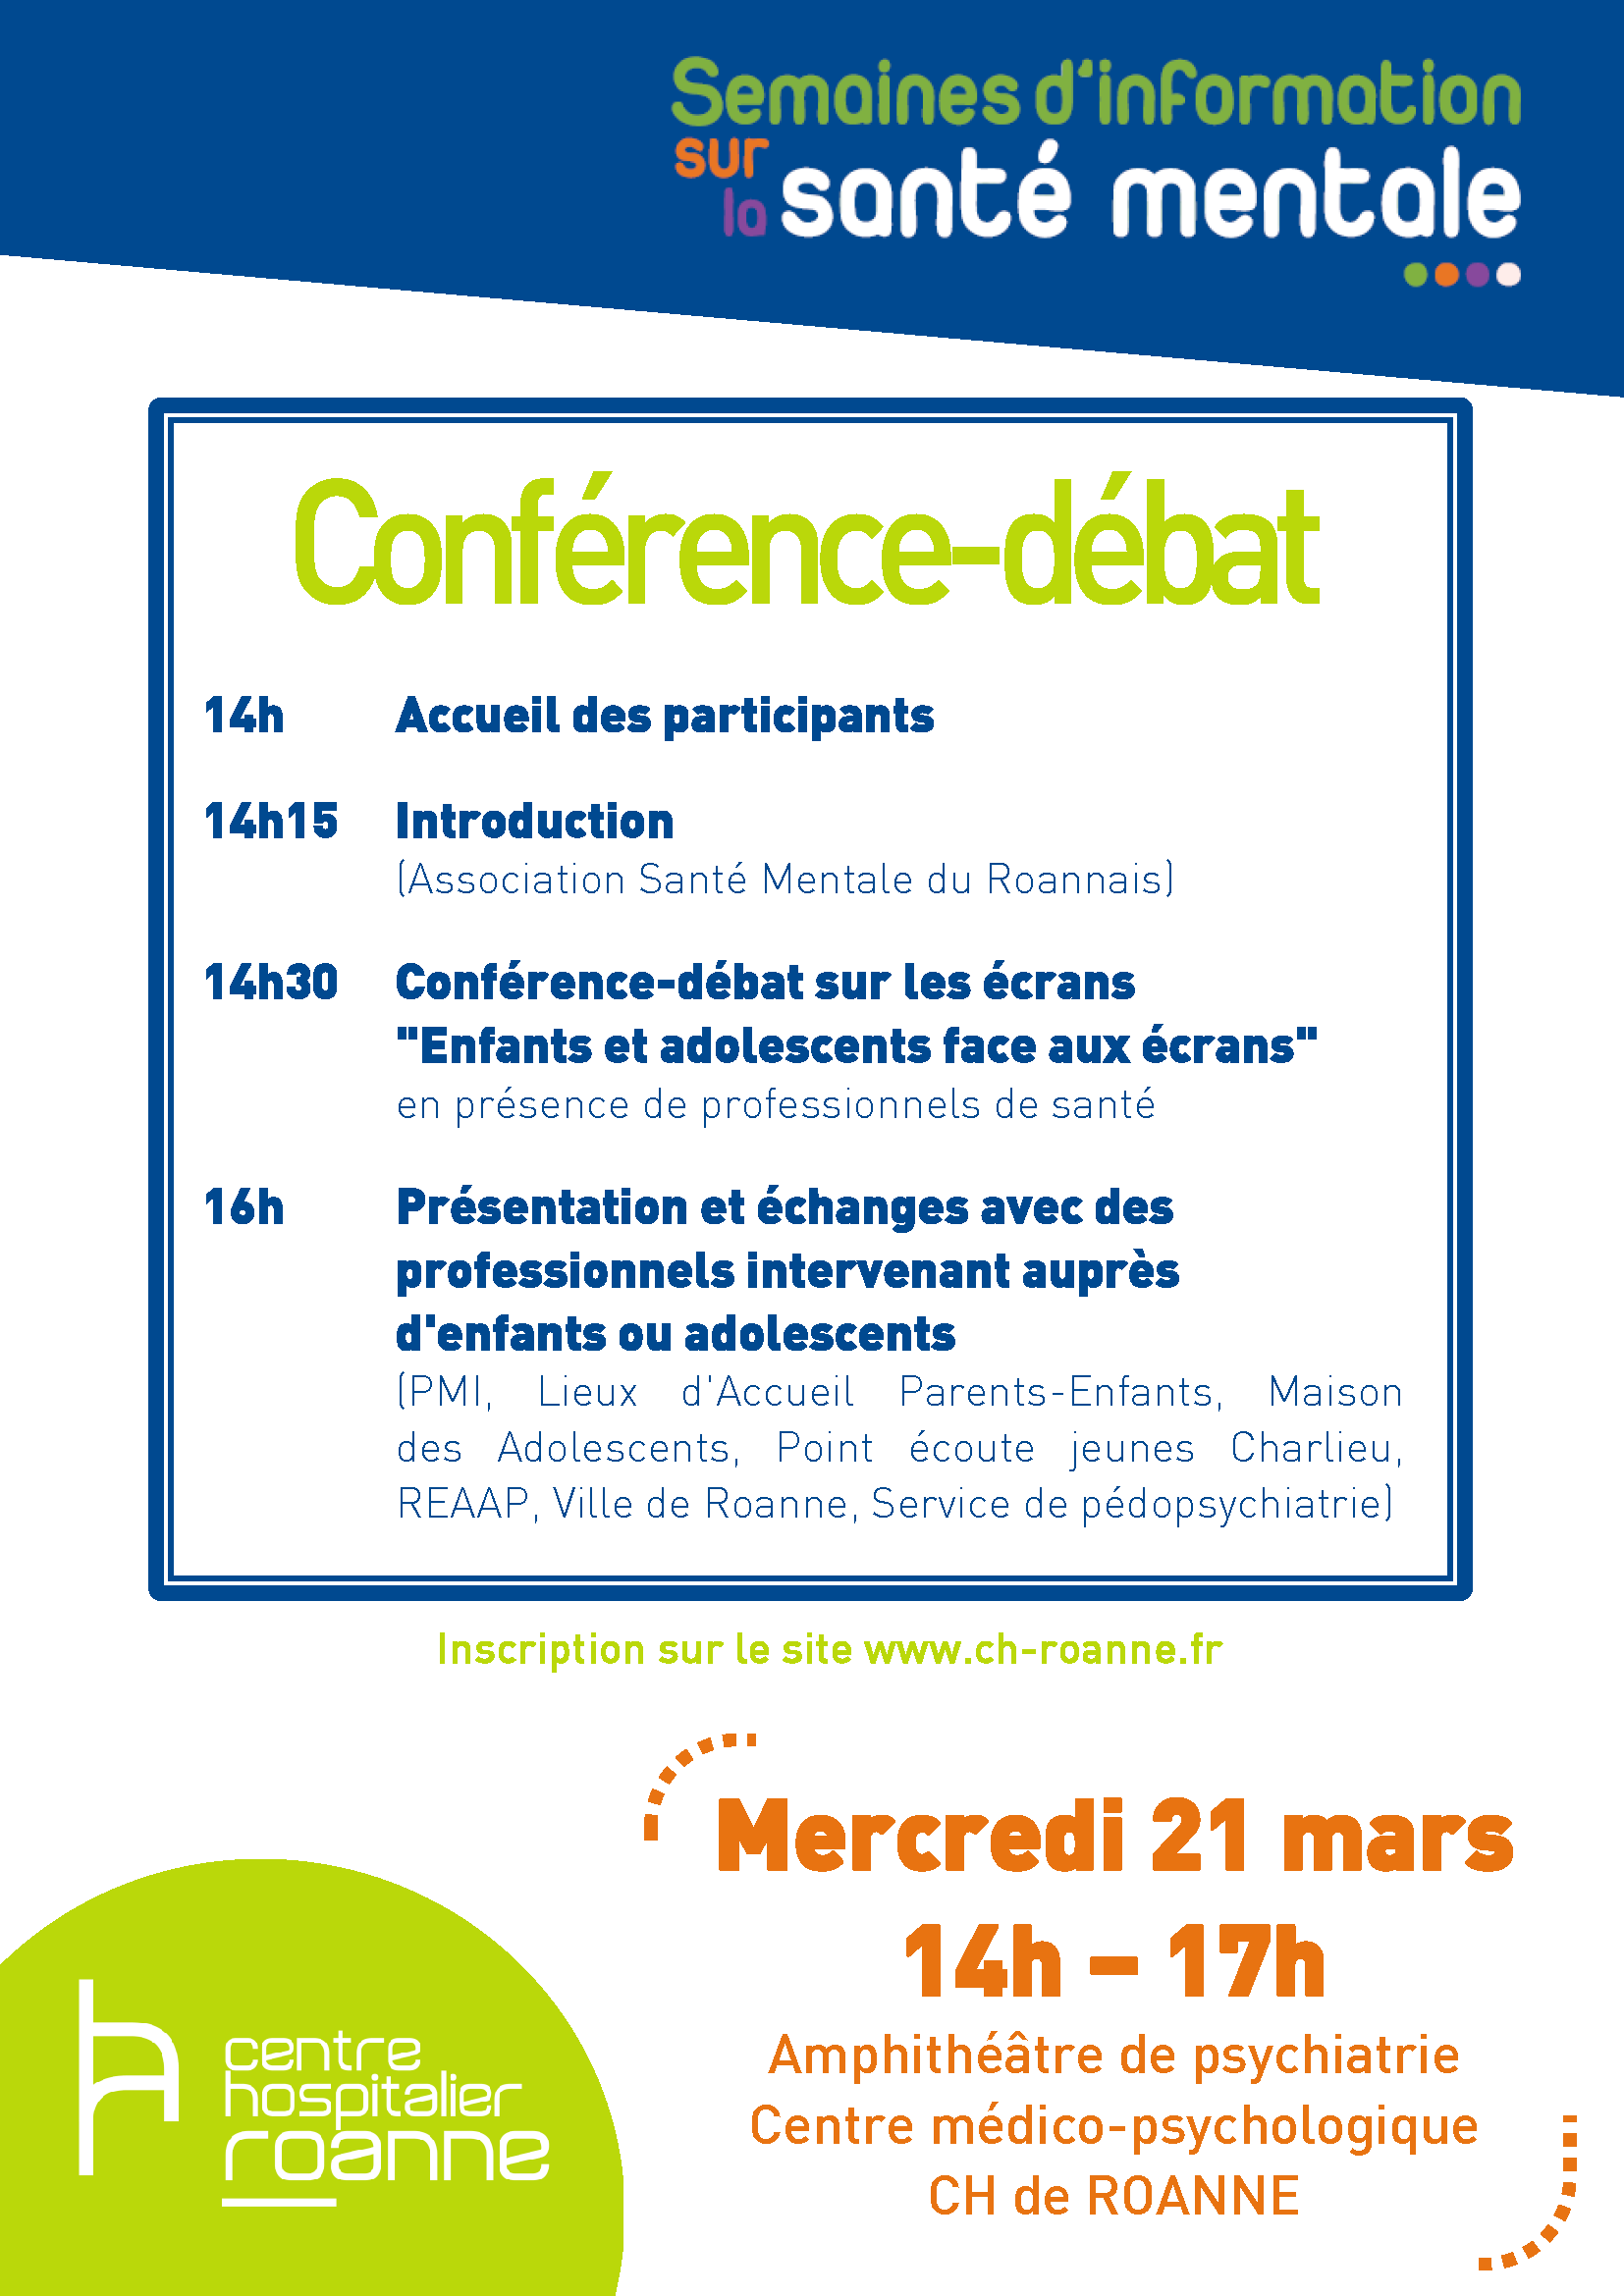 0755394843_1275763_affiche-sism-ch-roanne.png